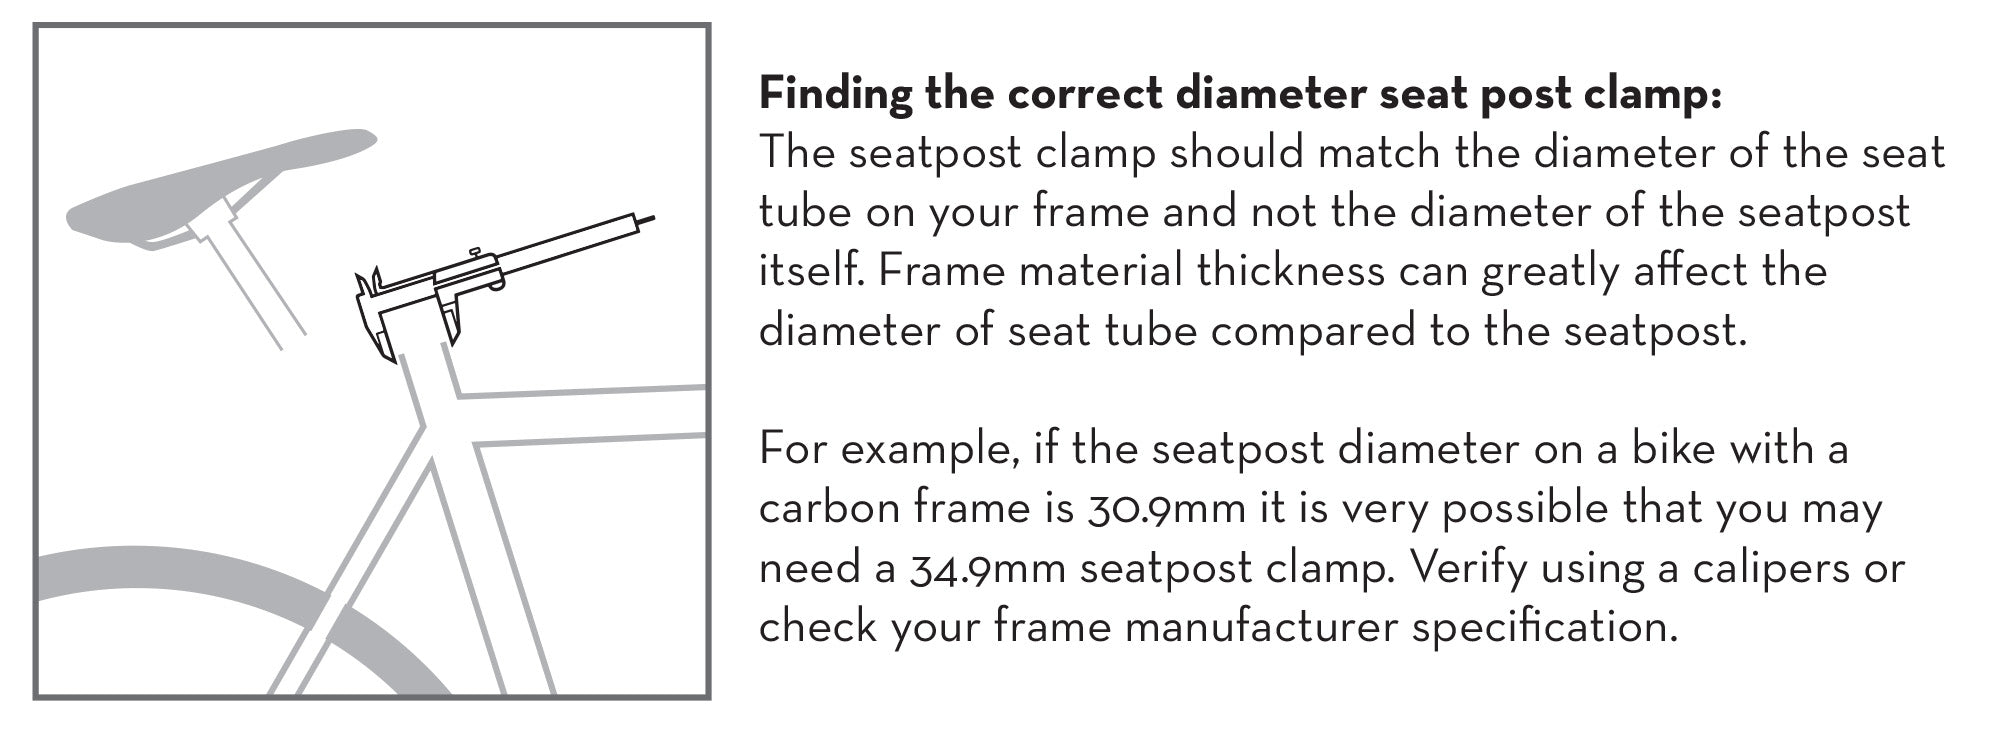 Finding the correct diameter seatpost clamp infographic